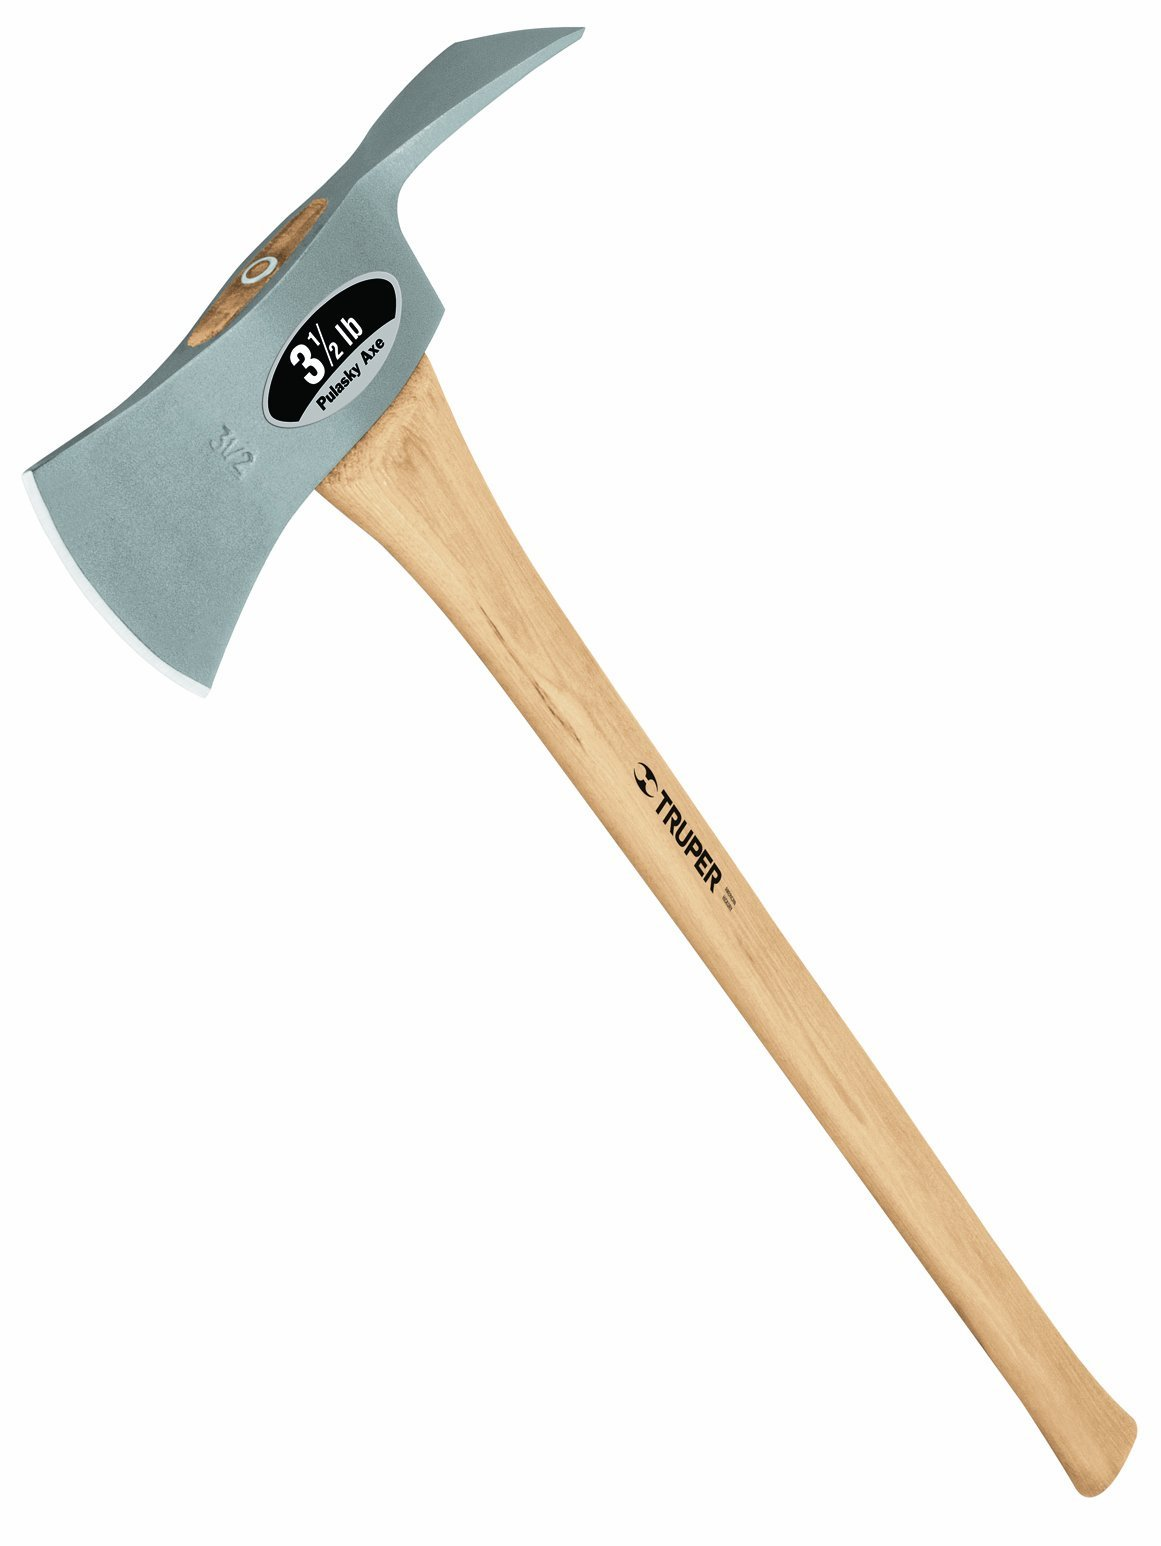 Truper 30529 3-1/2-Pound 35-Inch Pulaski Axe, Hickory Handle